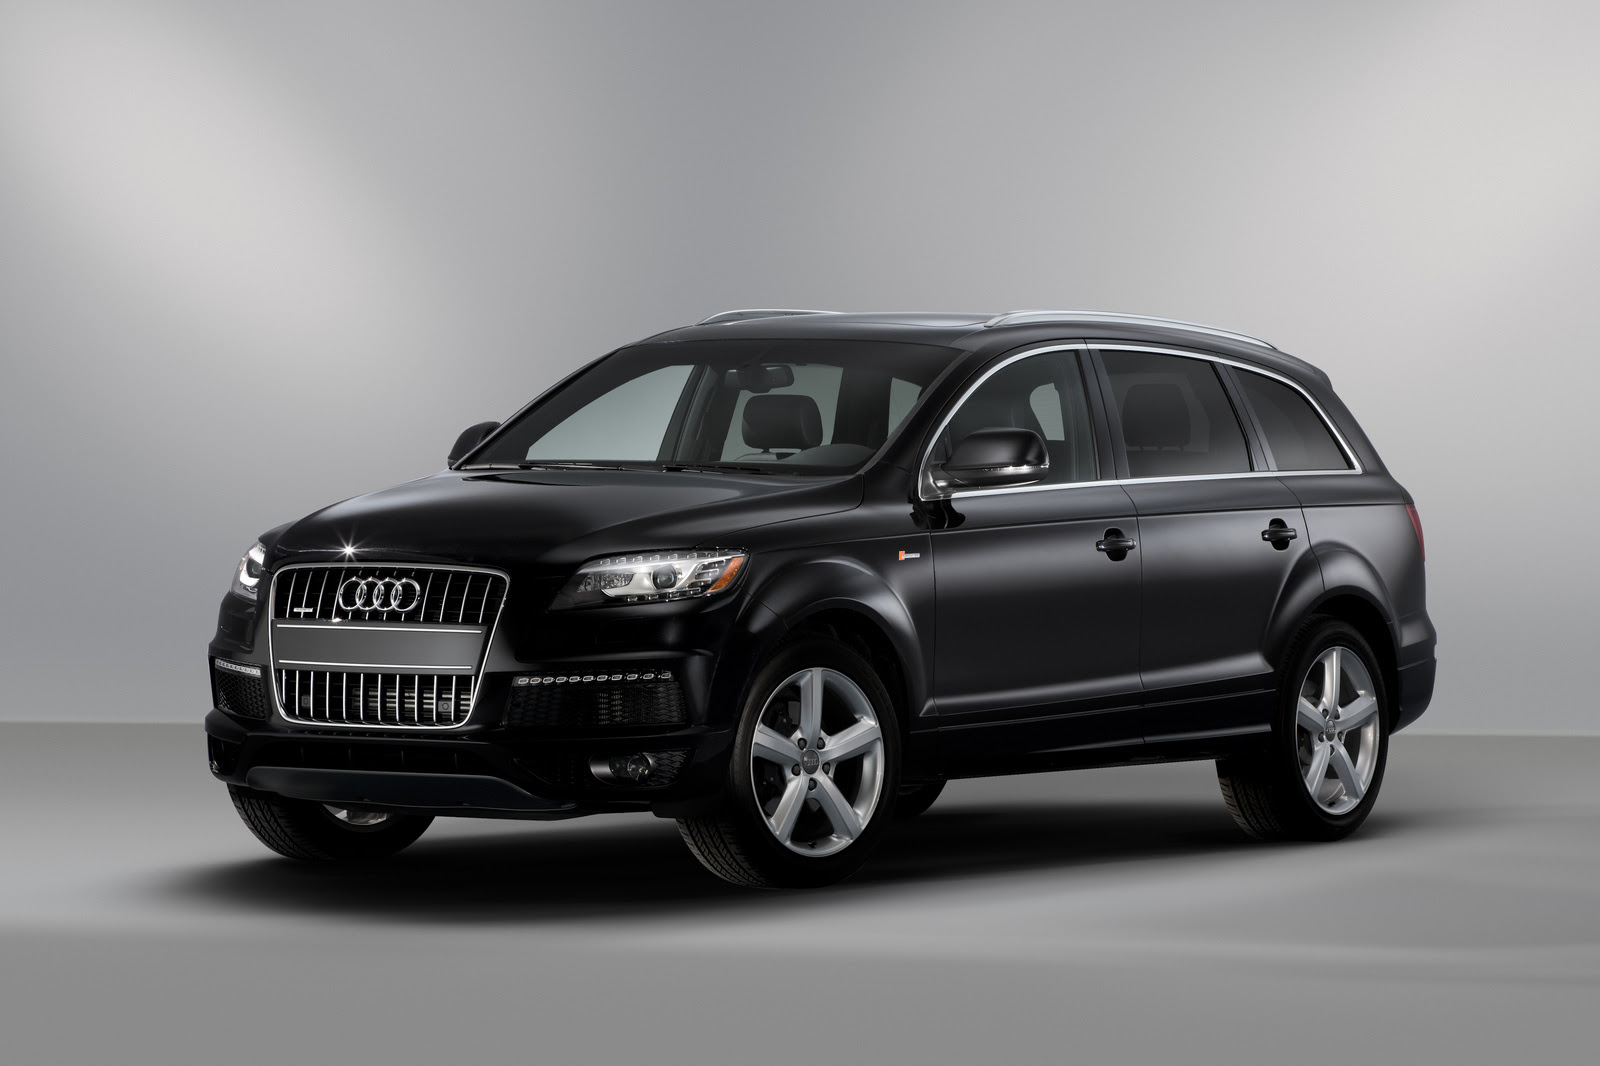 Home / Research / Audi / Q7 / 2013